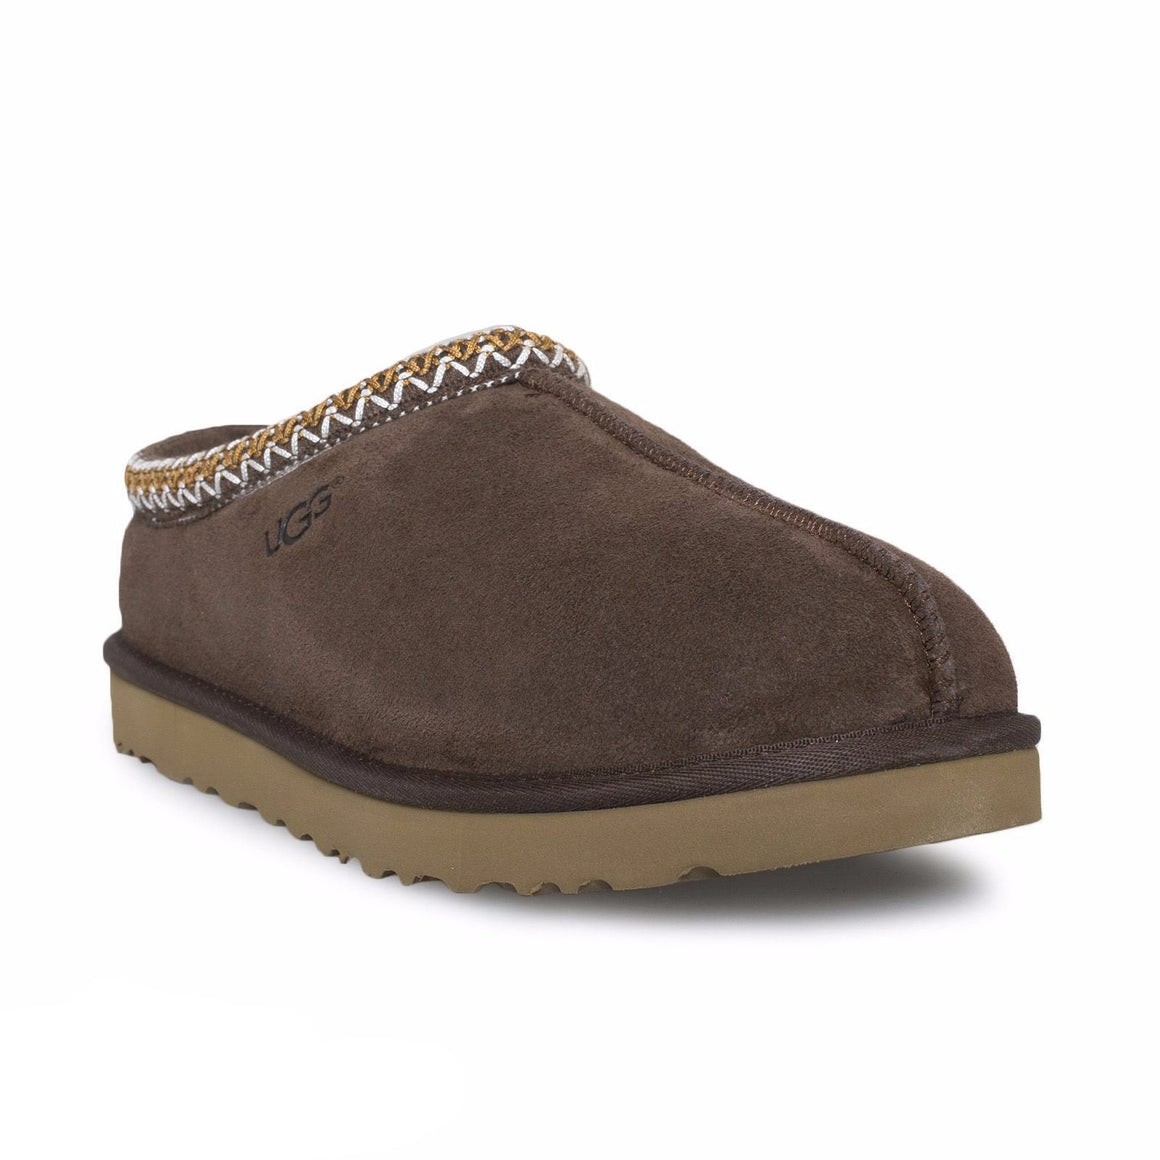 UGG Tasman Chocolate Slippers - Men`s